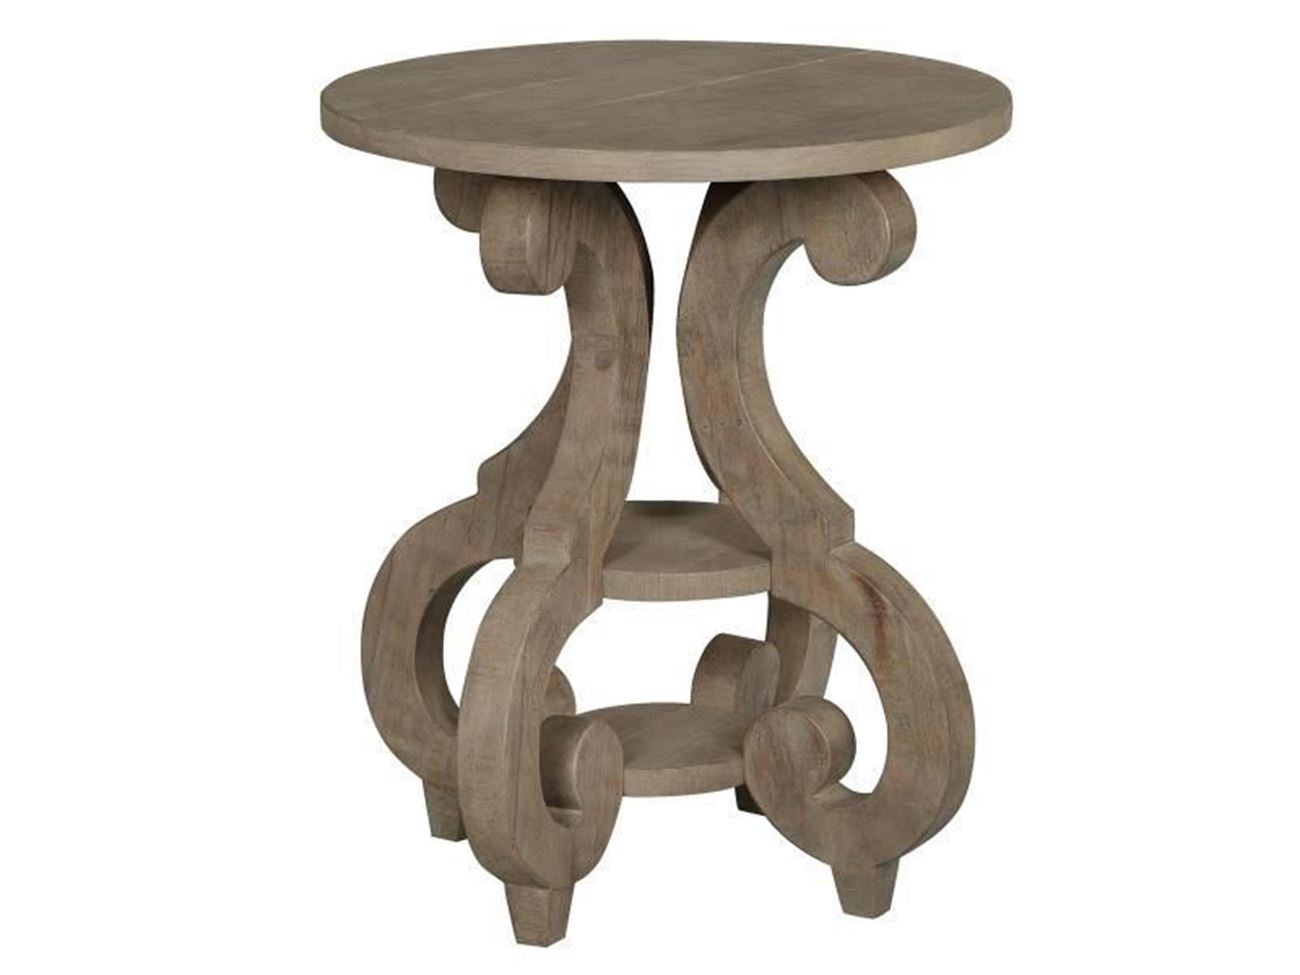 tinley park accent end table woodstock furniture mattress tables target black lamp second hand kitchens tiffany base victorian sofa cool nesting sun umbrella ikea lack matching